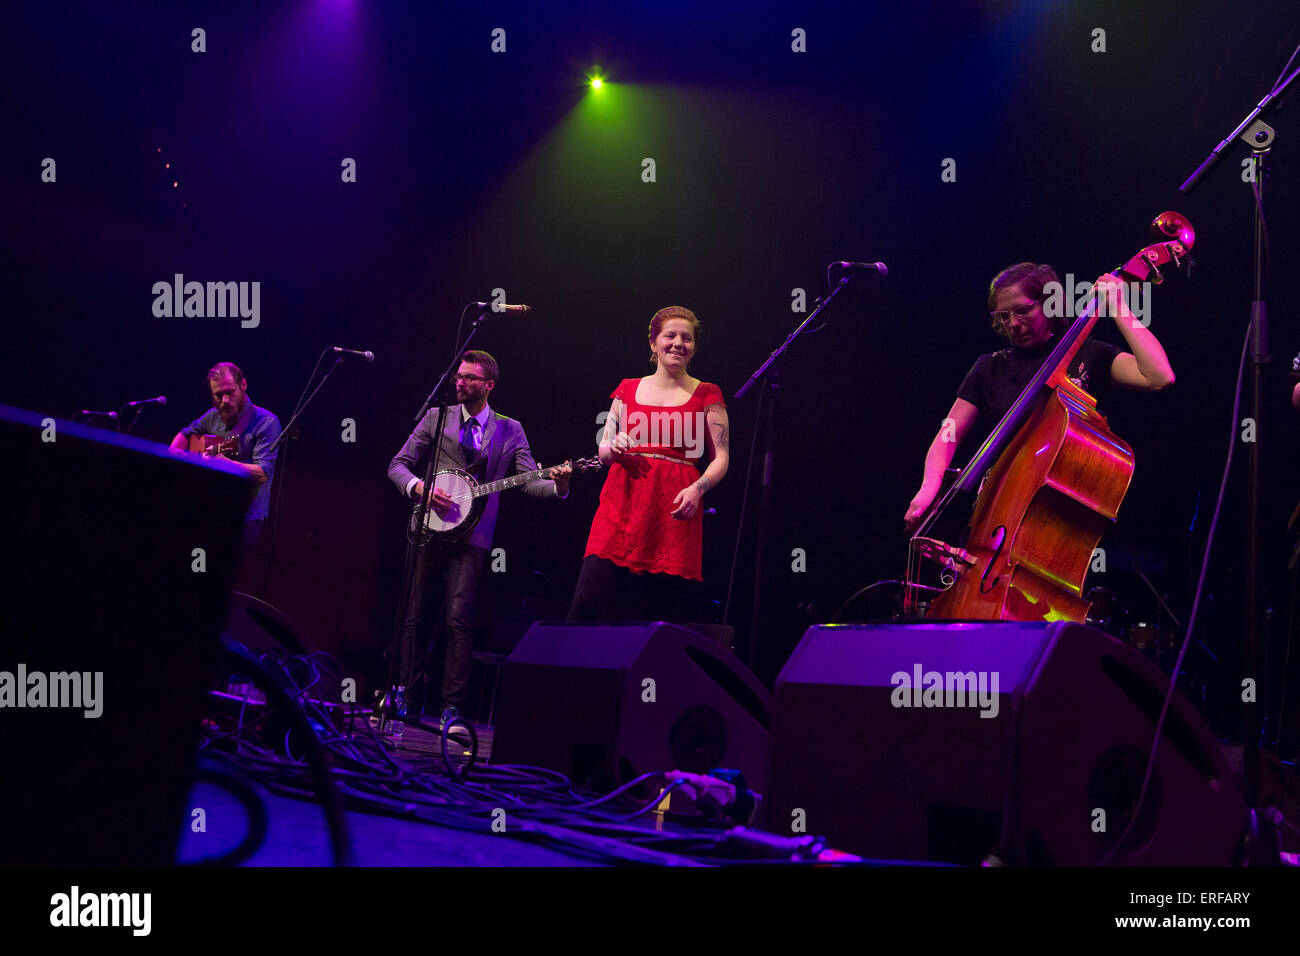 Joy Kills Sorrow, American contemporary string band, performed at Opening concert Celtic Connections 2014. Based - Stock Image